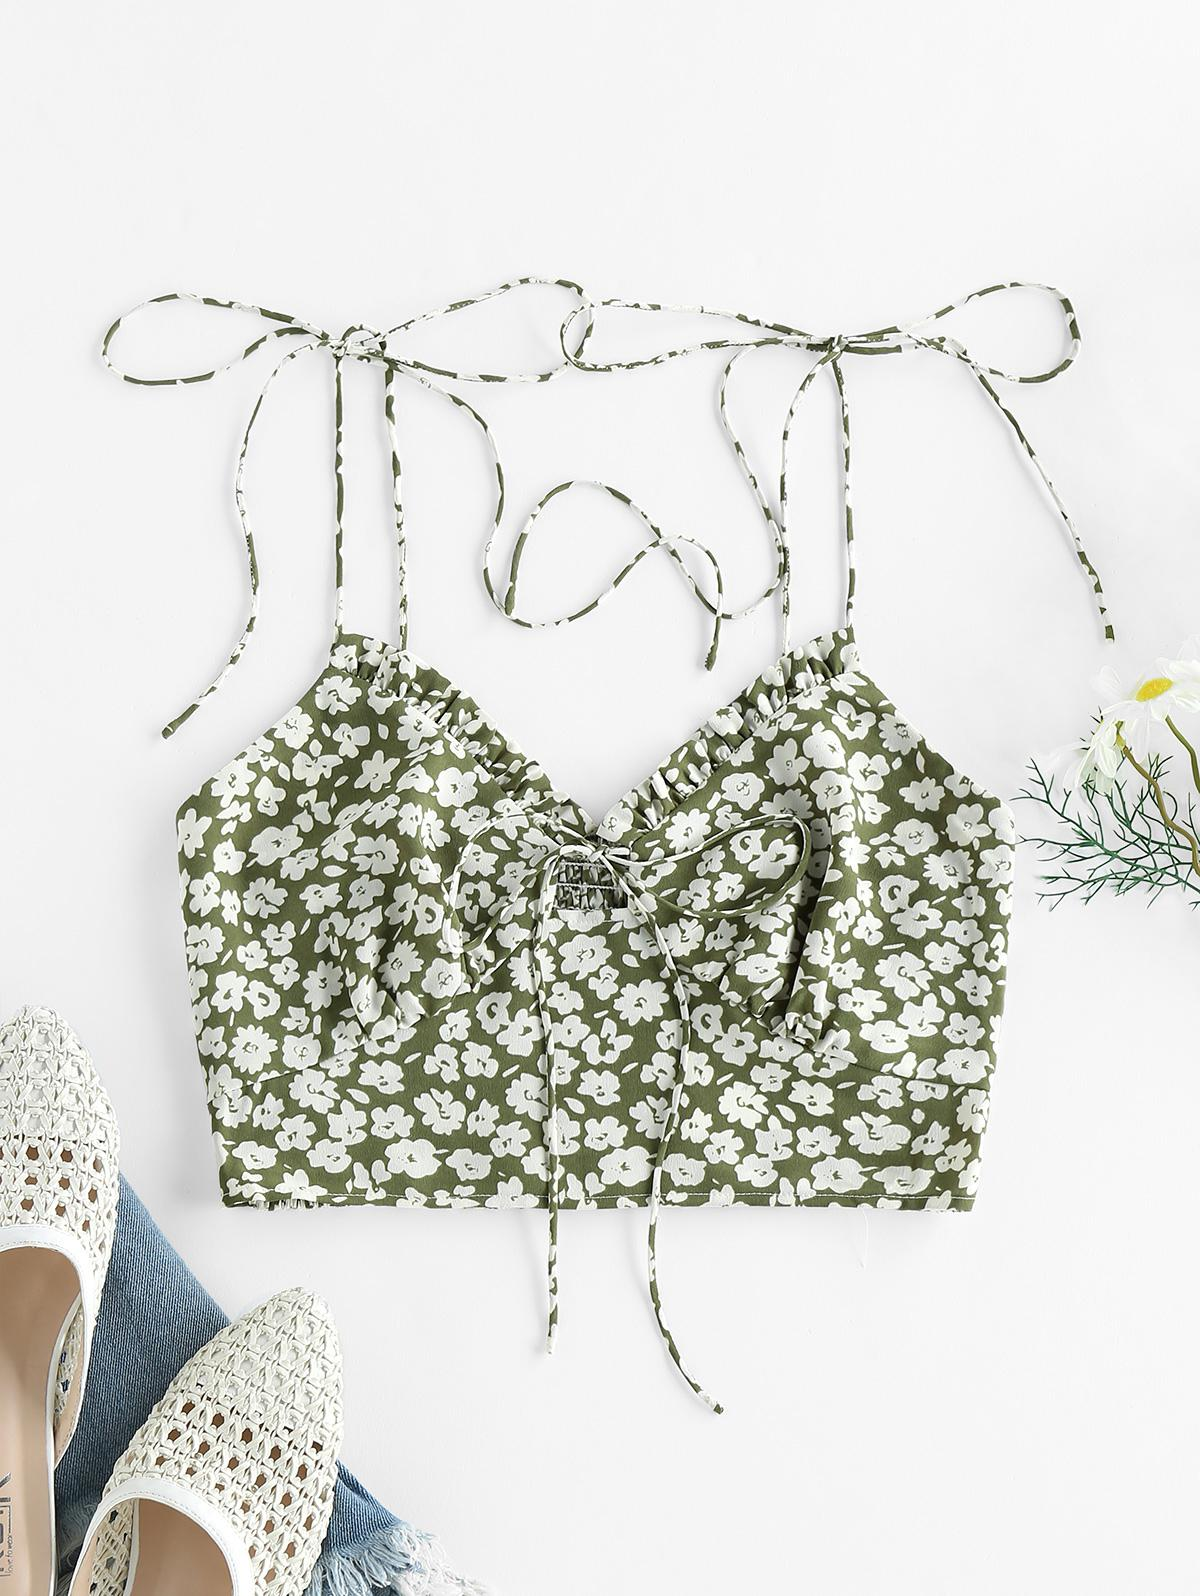 ZAFUL Ditsy Print Ruffle Smocked Tie Shoulder Bustier Top